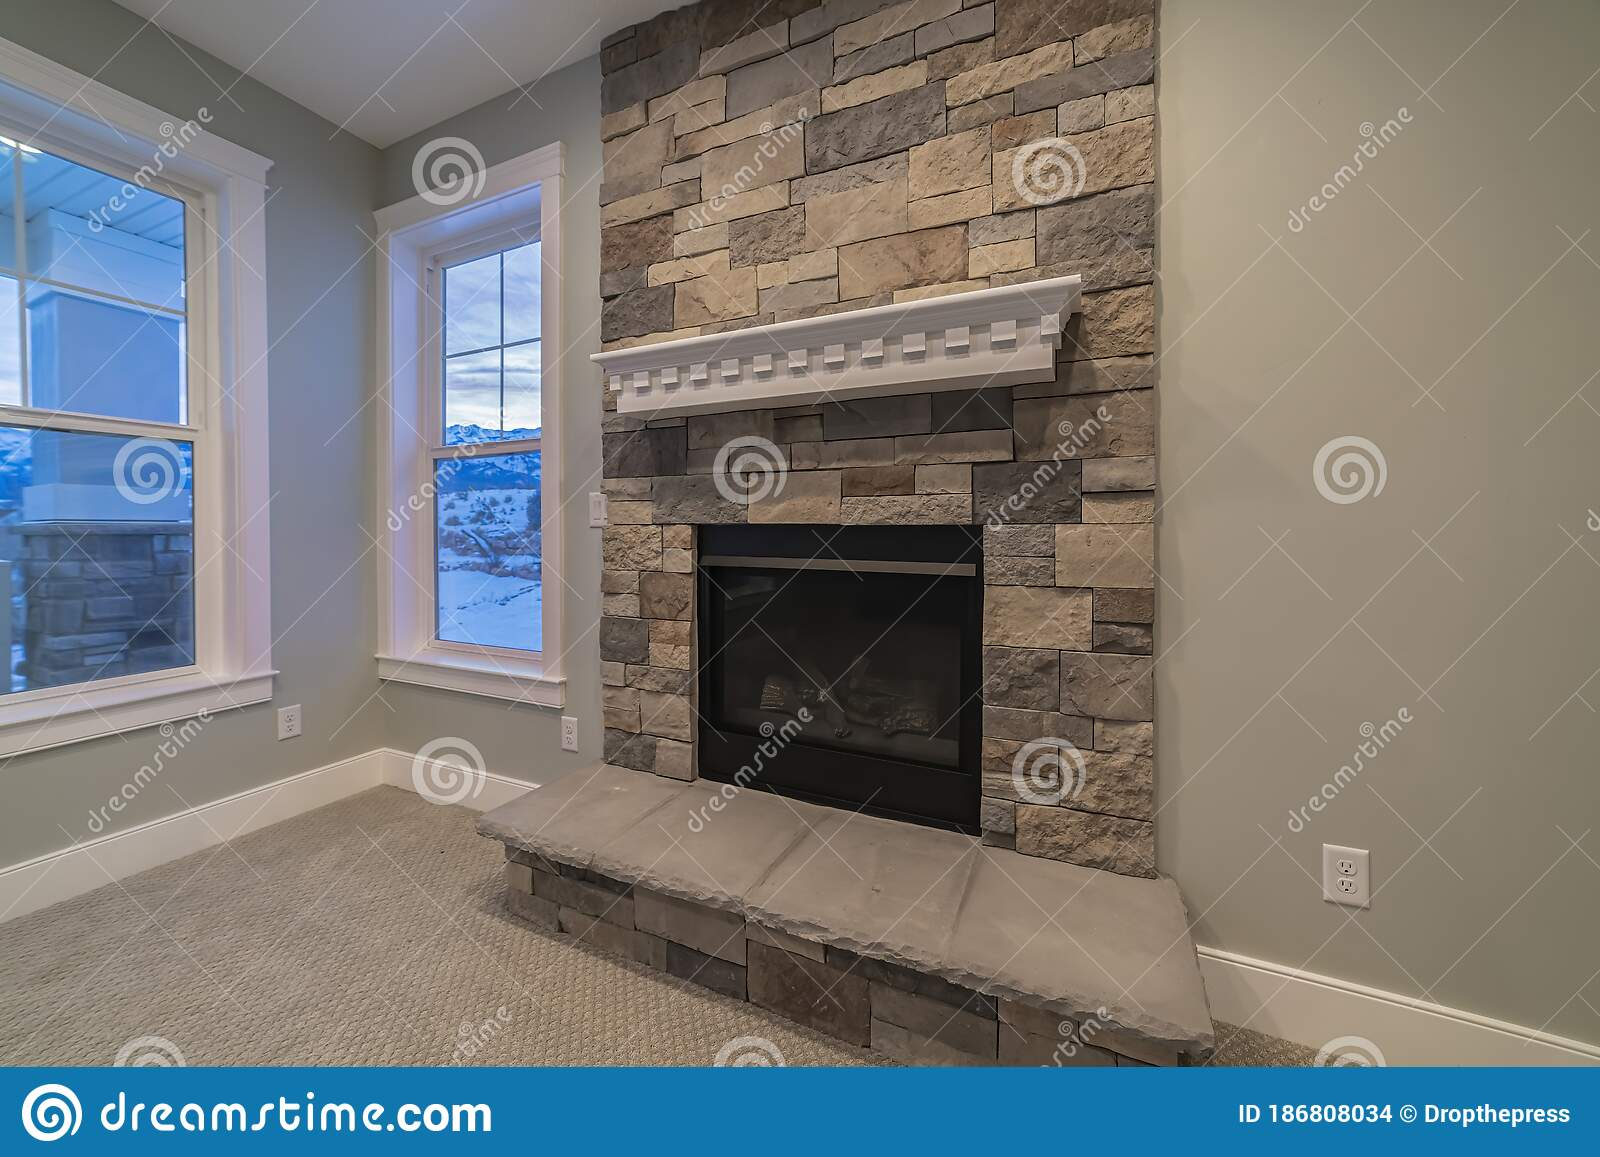 Picture of: Modern Fireplace And Decorative Shelf Against Stone Brick Accent Wall Of Home Stock Photo Image Of Brick Outdoors 186808034